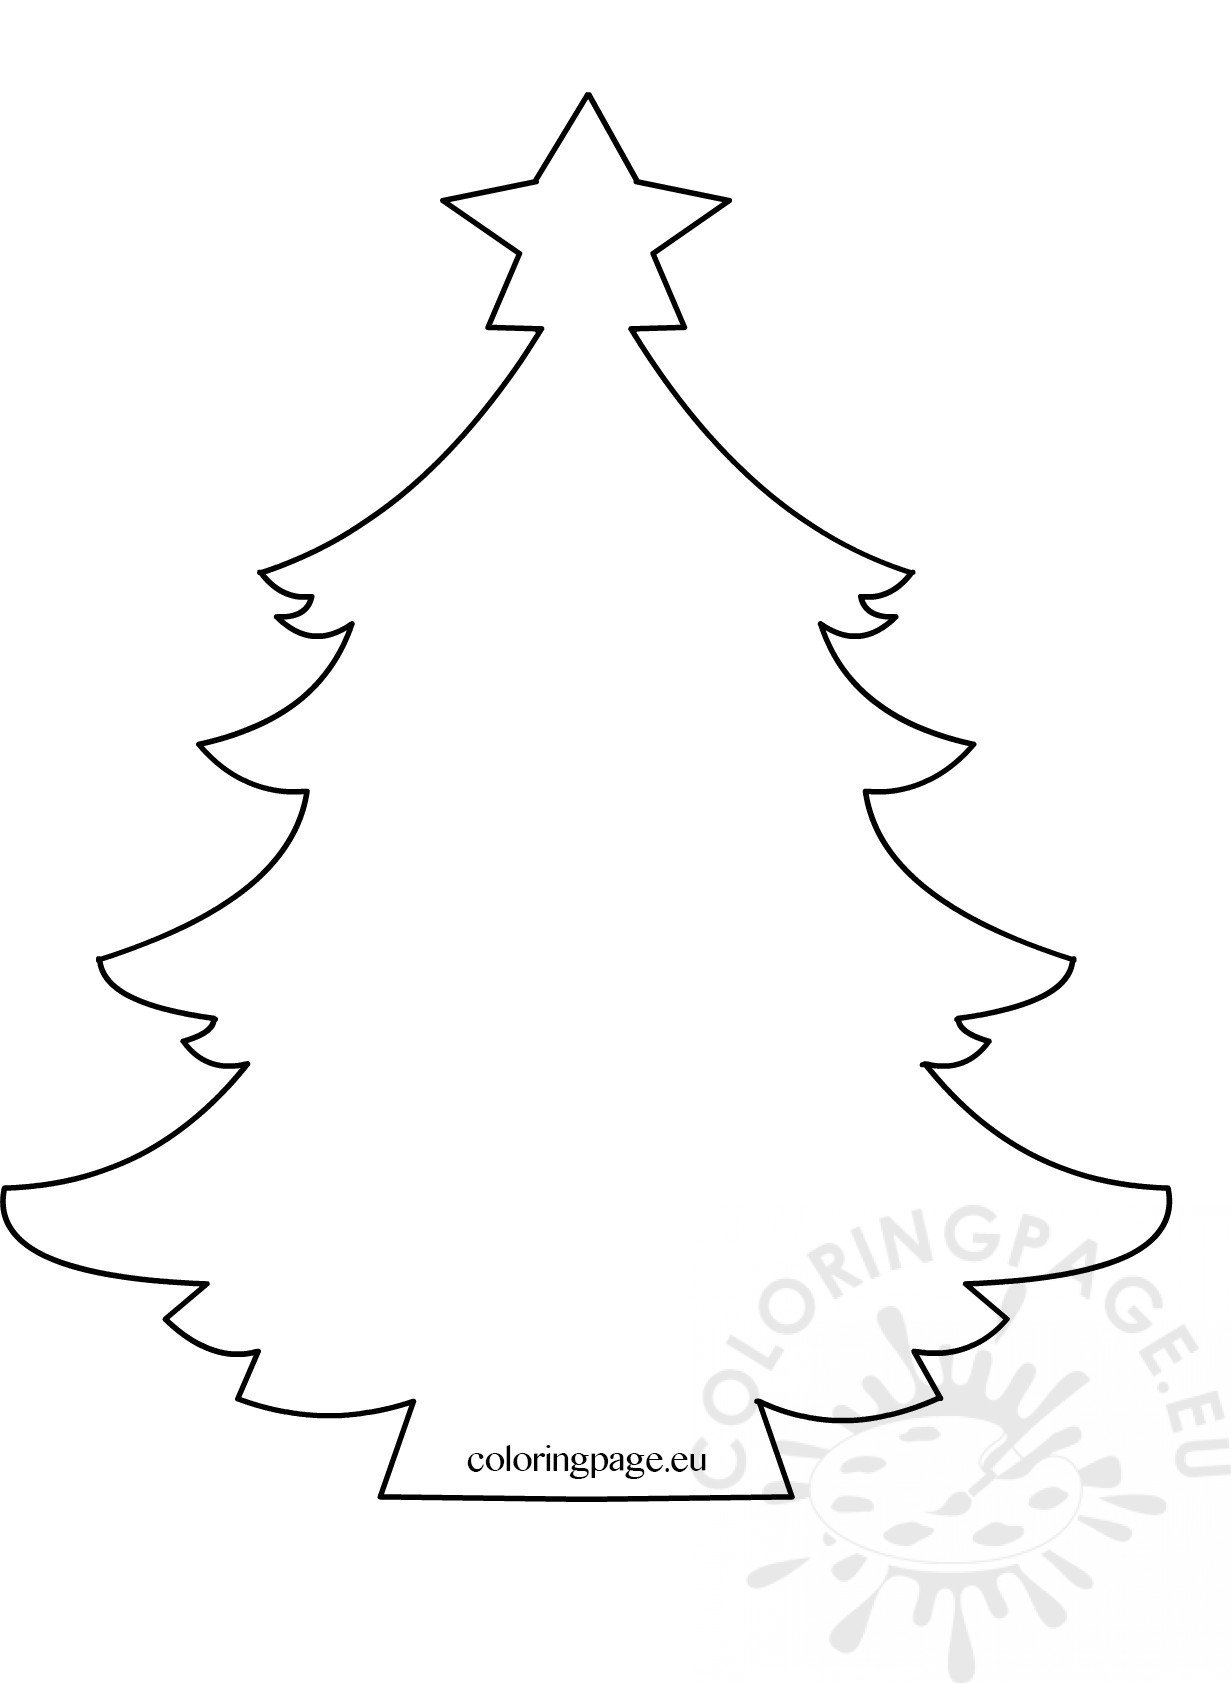 Christmas tree with star template - Coloring Page